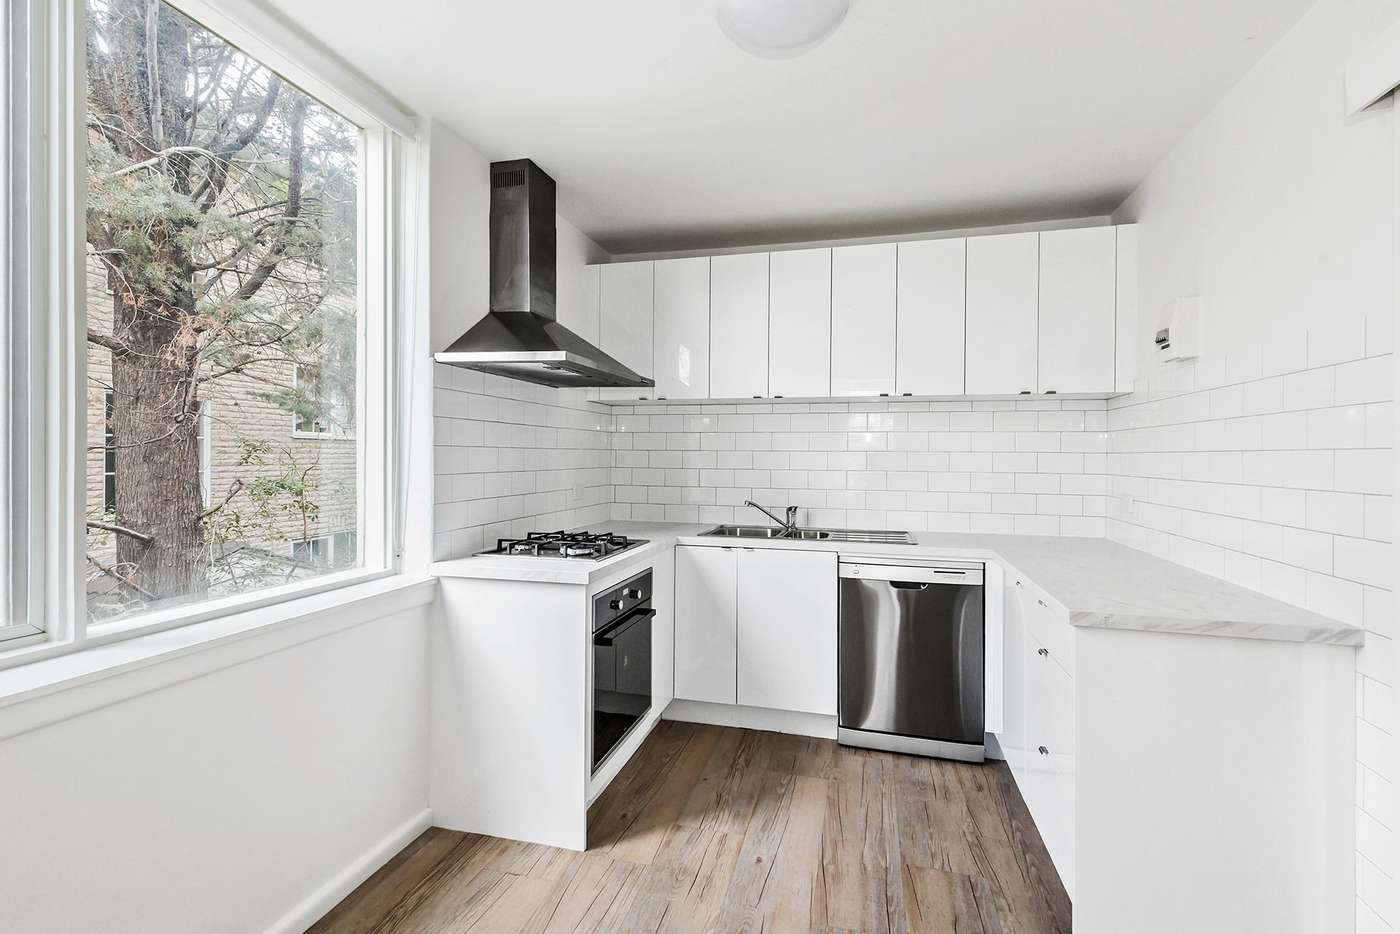 Main view of Homely apartment listing, 6/43 Rockley Road, South Yarra VIC 3141